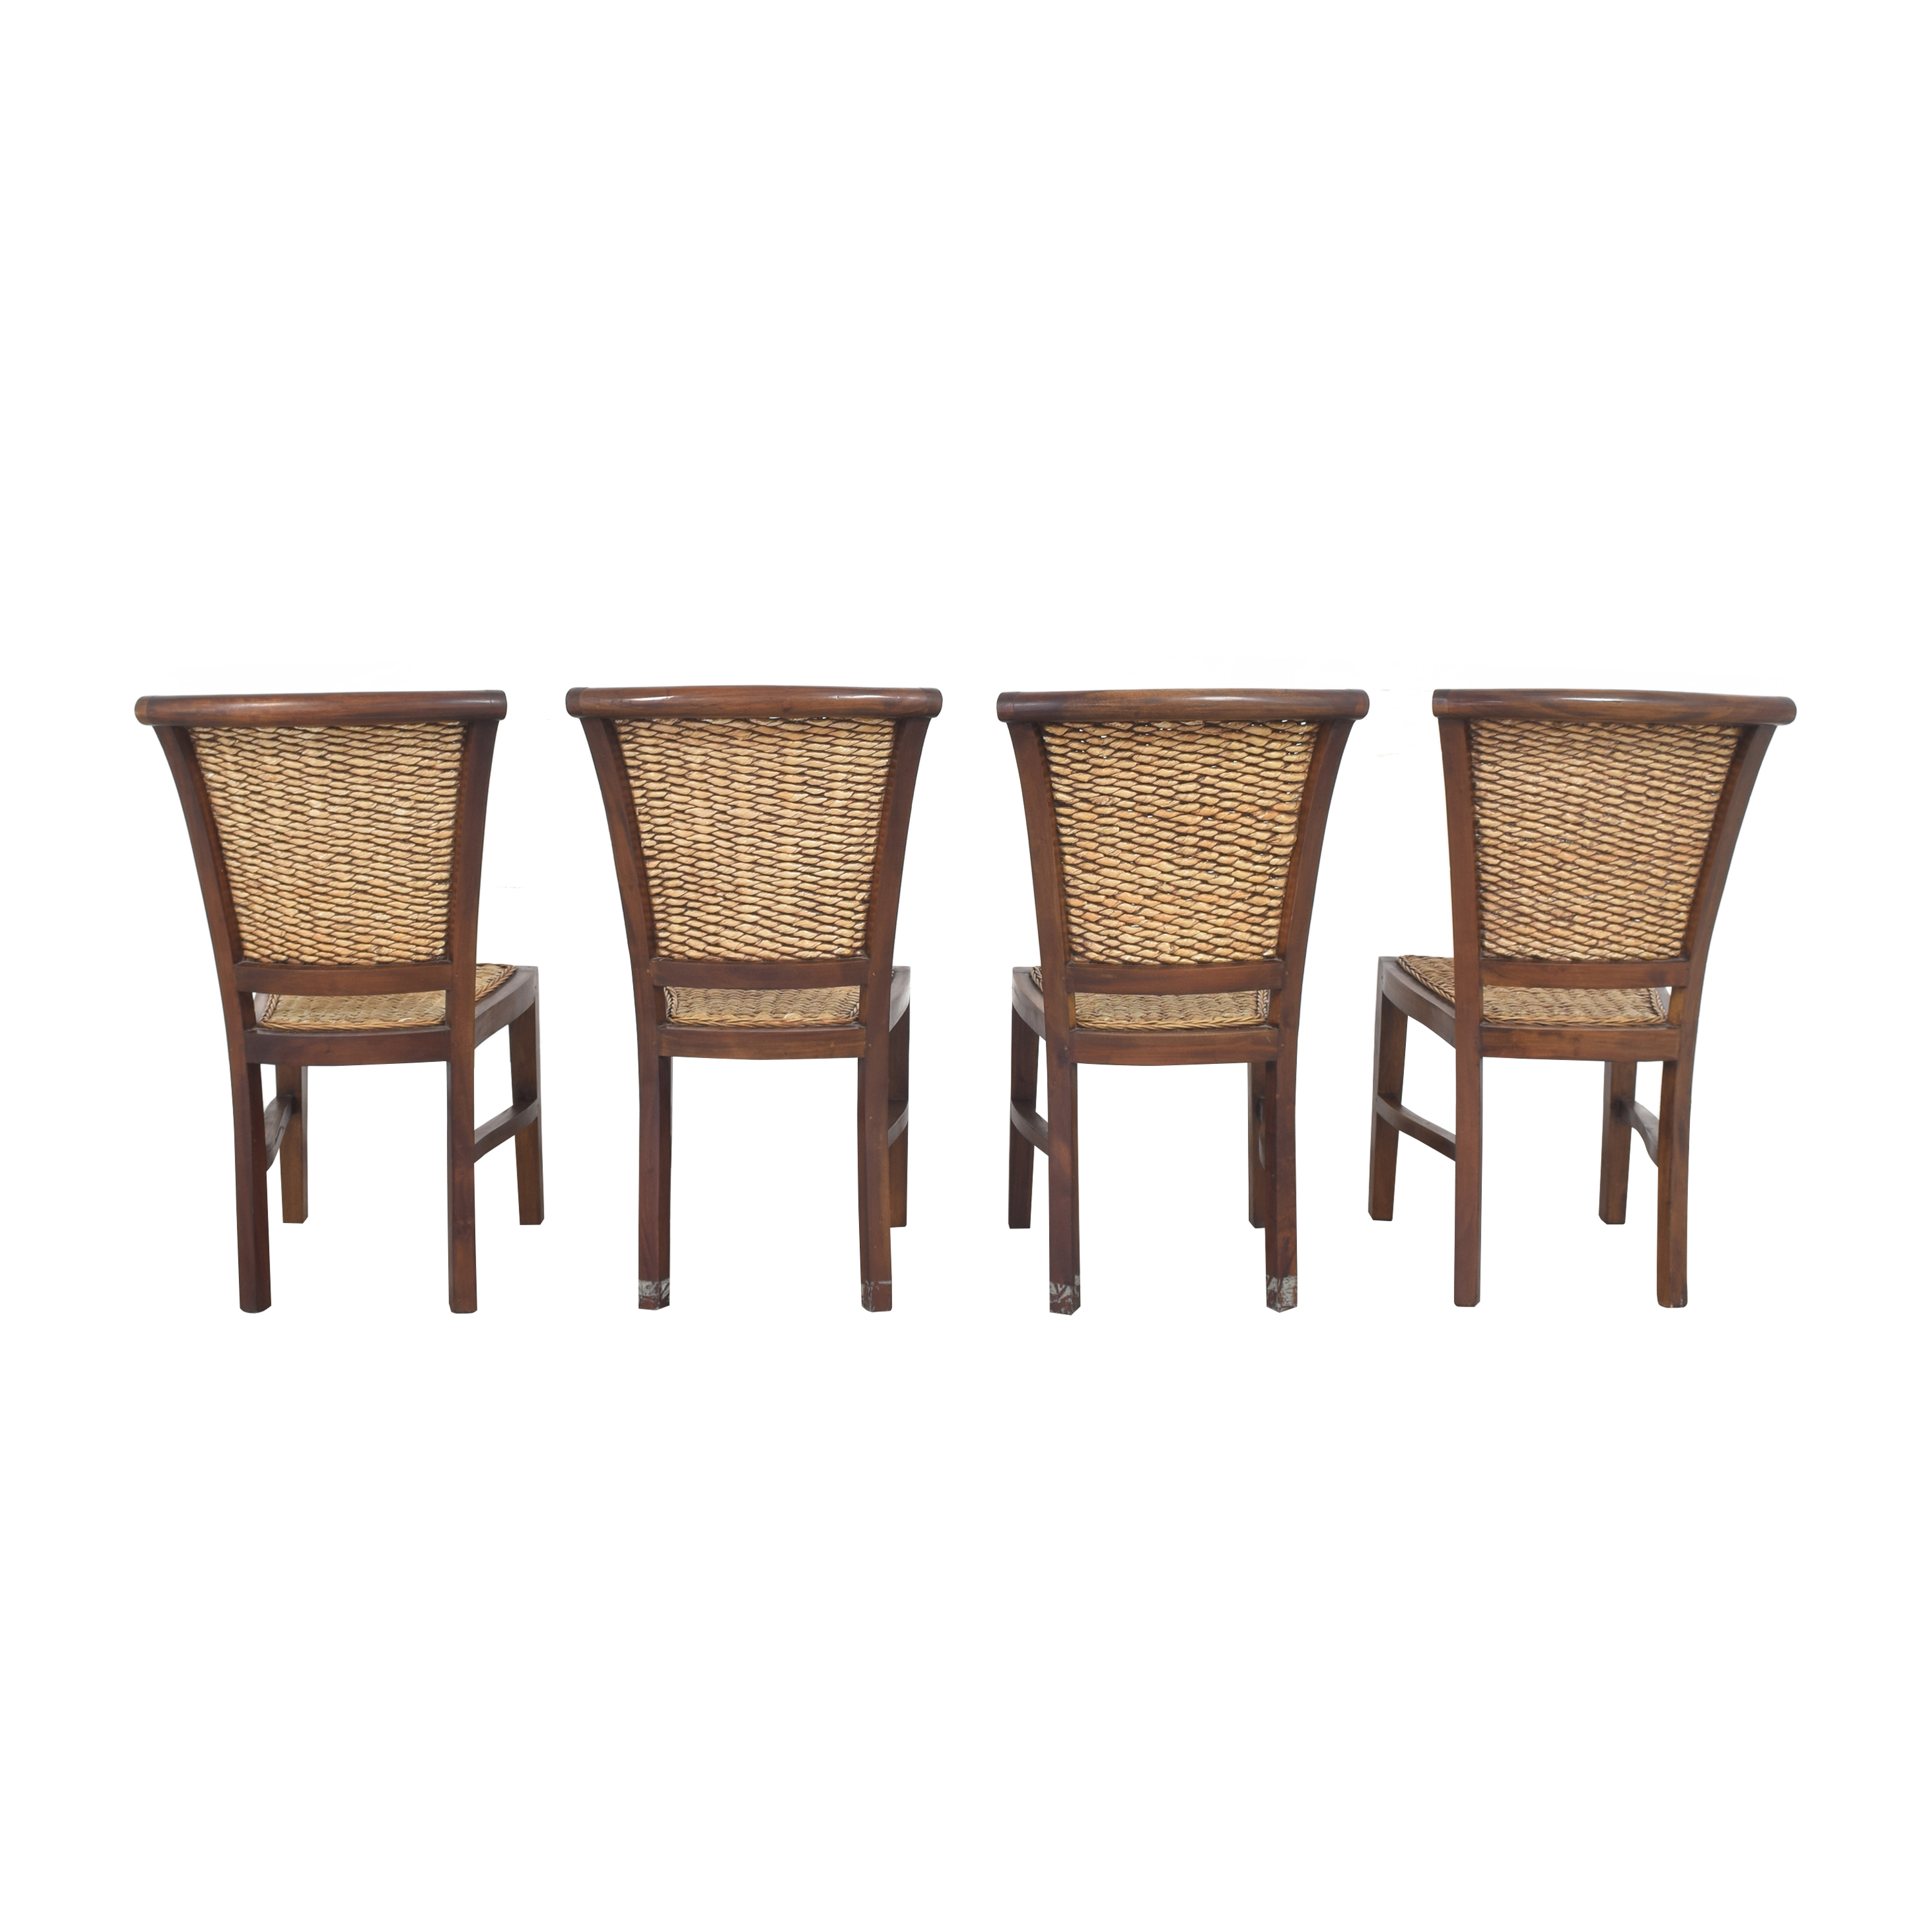 ABC Carpet & Home Woven Dining Chairs ABC Carpet & Home